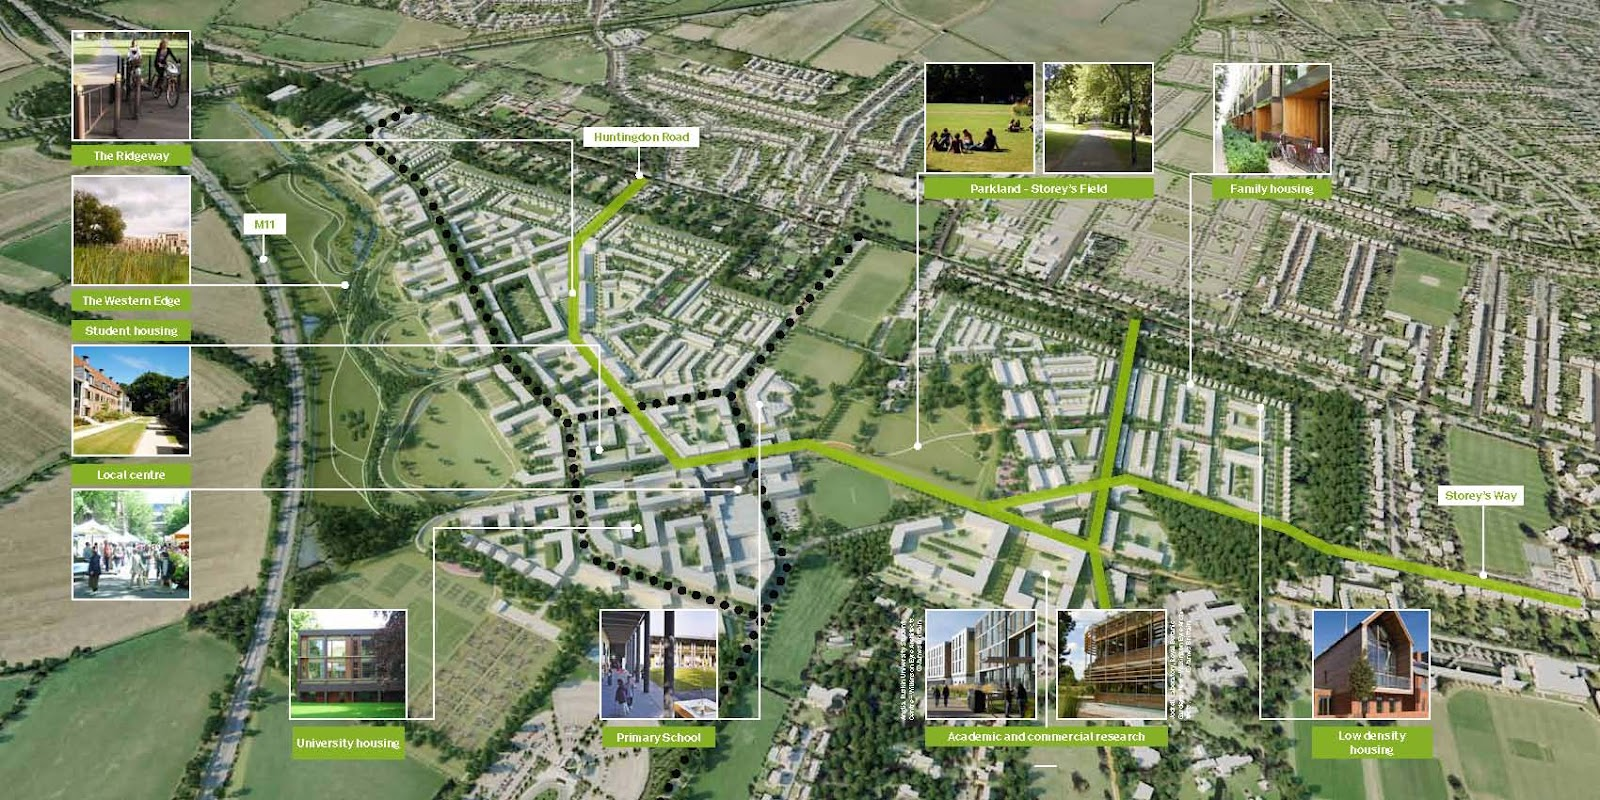 Shortlisted: North West Cambridge Development